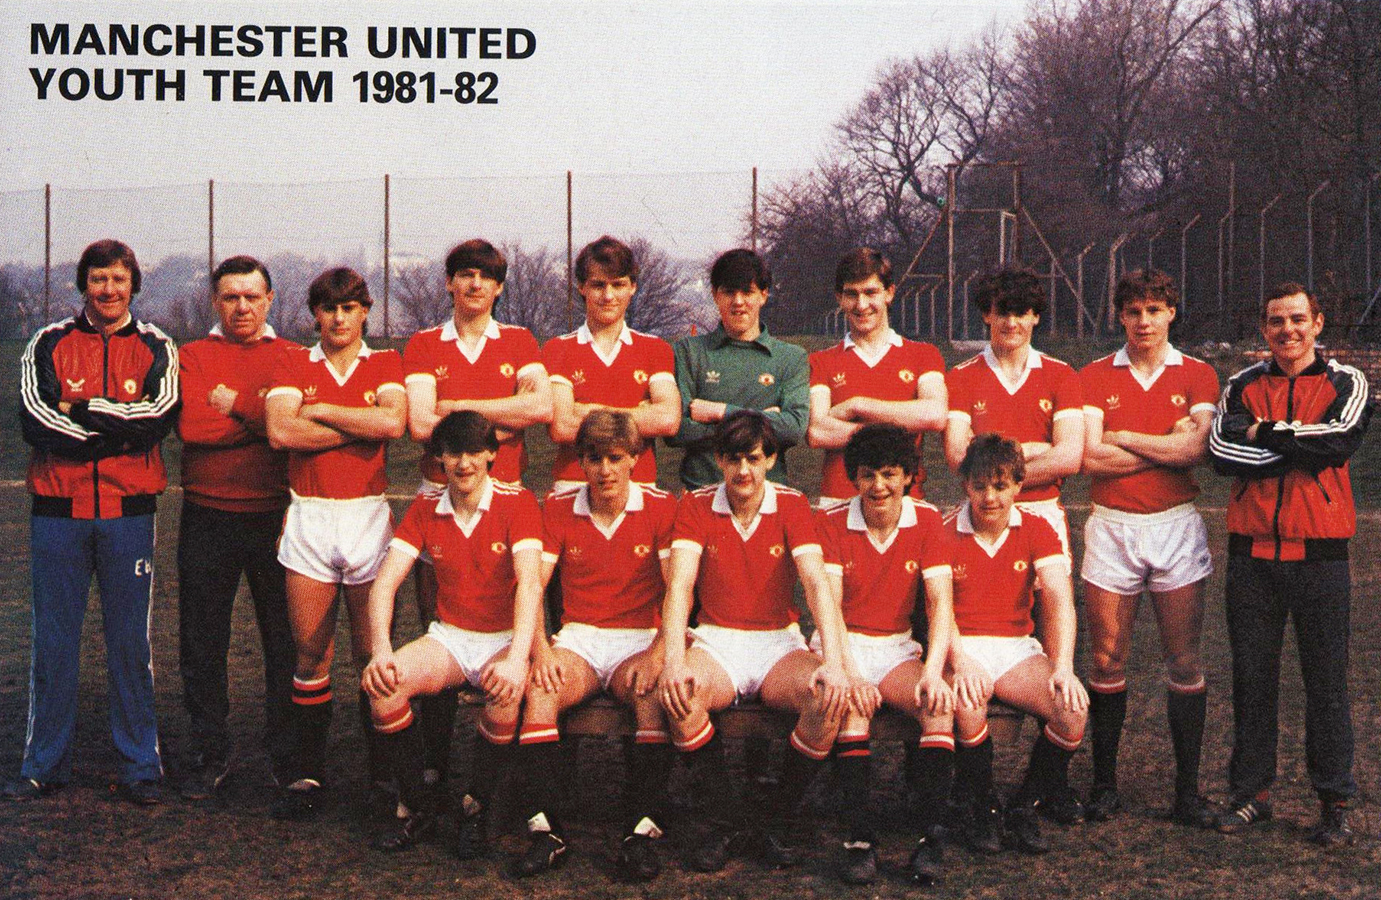 Manchester united 1981 82 youth team for Buro team 82